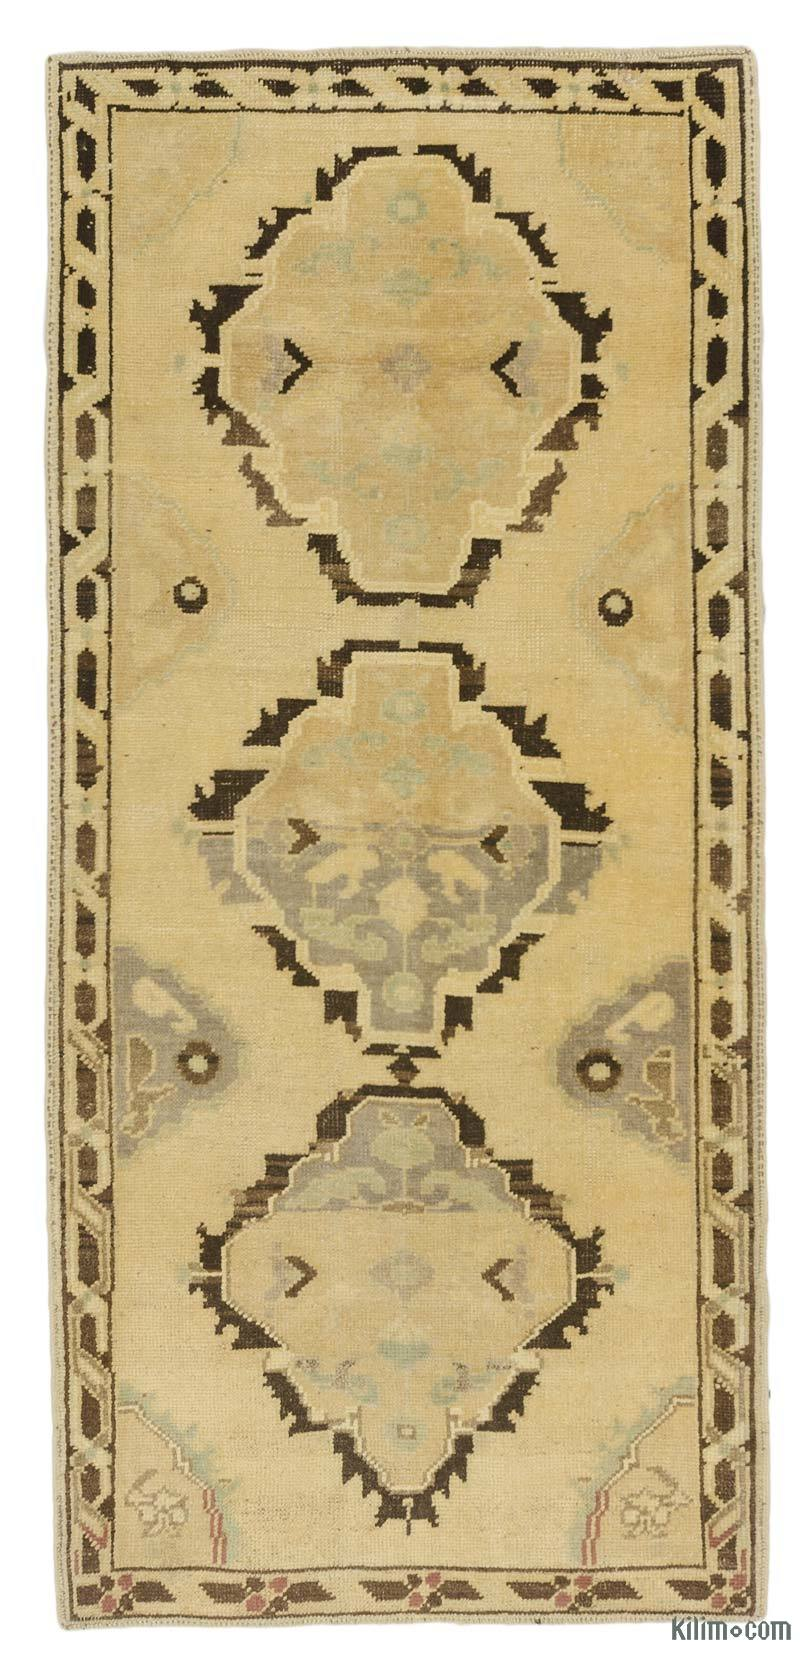 """Beige, Brown All Wool Hand-Knotted Vintage Turkish Rug - 2' 9"""" x 5' 4"""" (33 in. x 64 in.) - K0039936"""